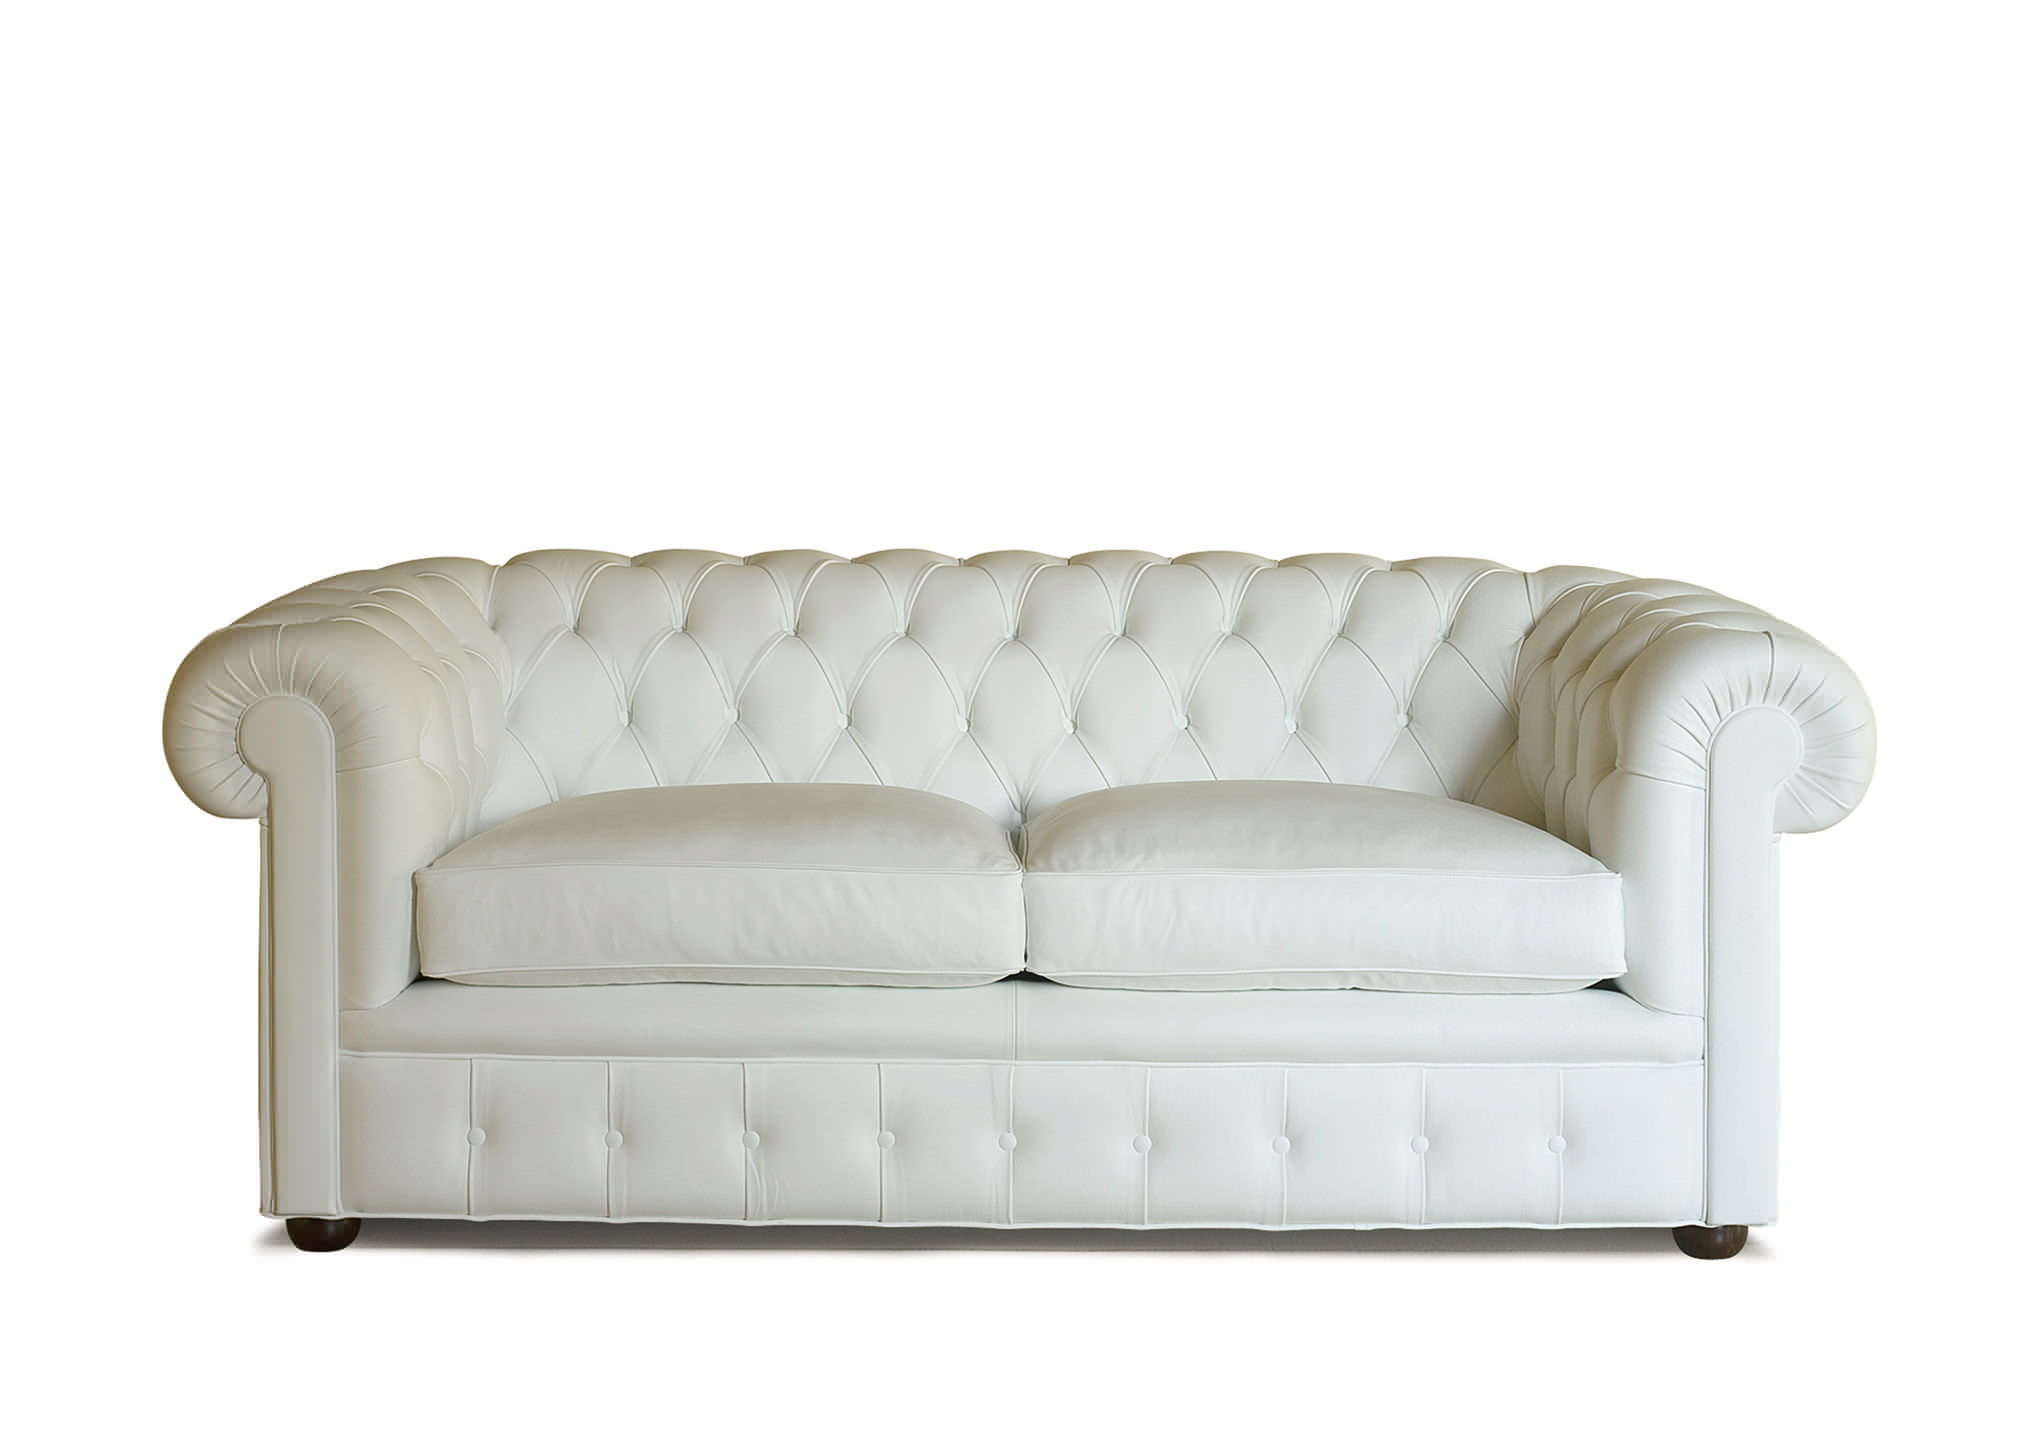 Bettsofa Chesterfield Bettsofa Chesterfield Leder Stoff Kent Berto Salotti